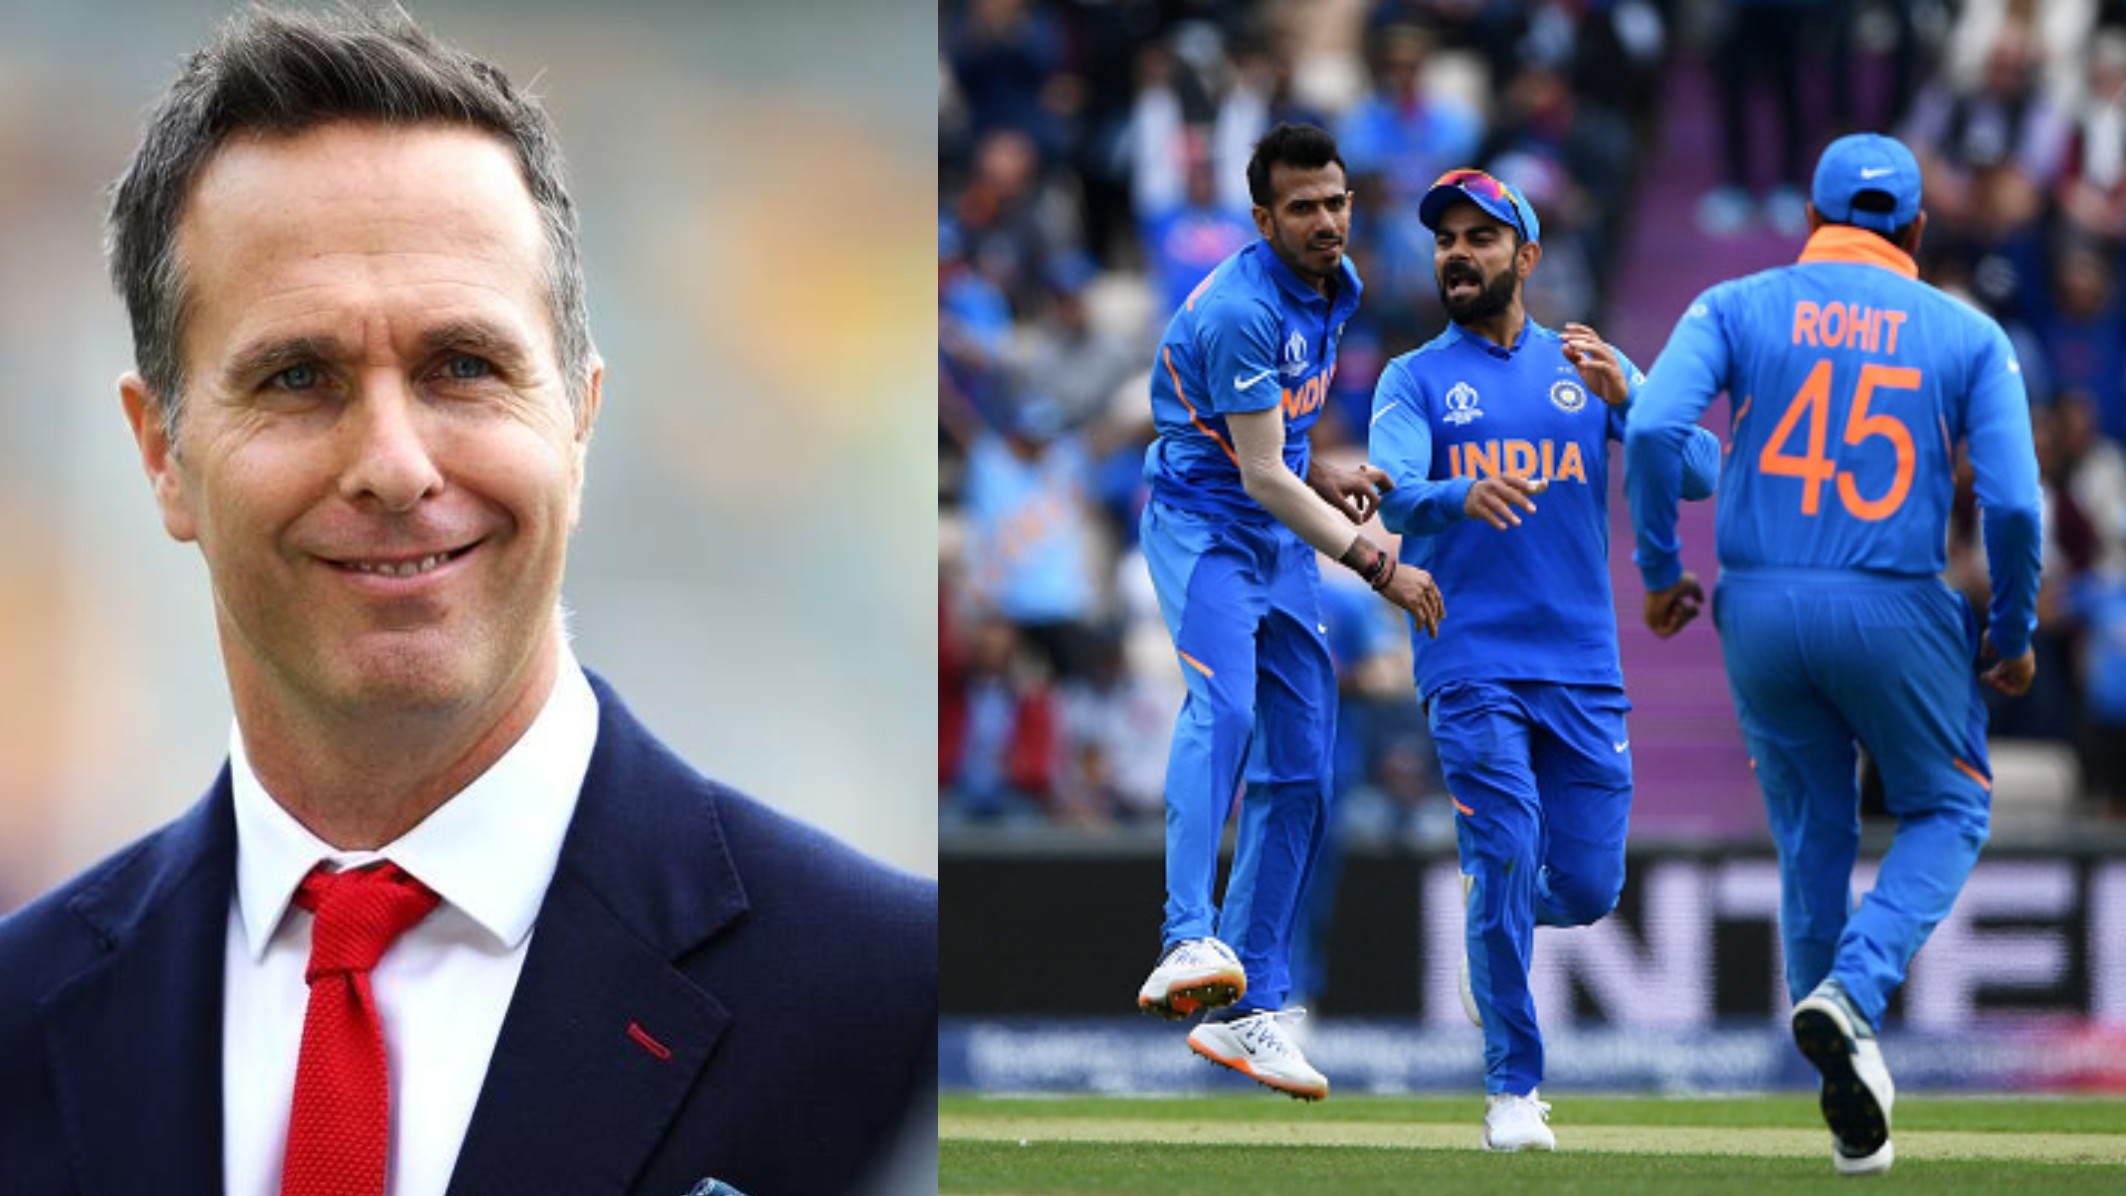 CWC 2019: Indian team fans asks 'panauti' Michael Vaughan of England to stay away